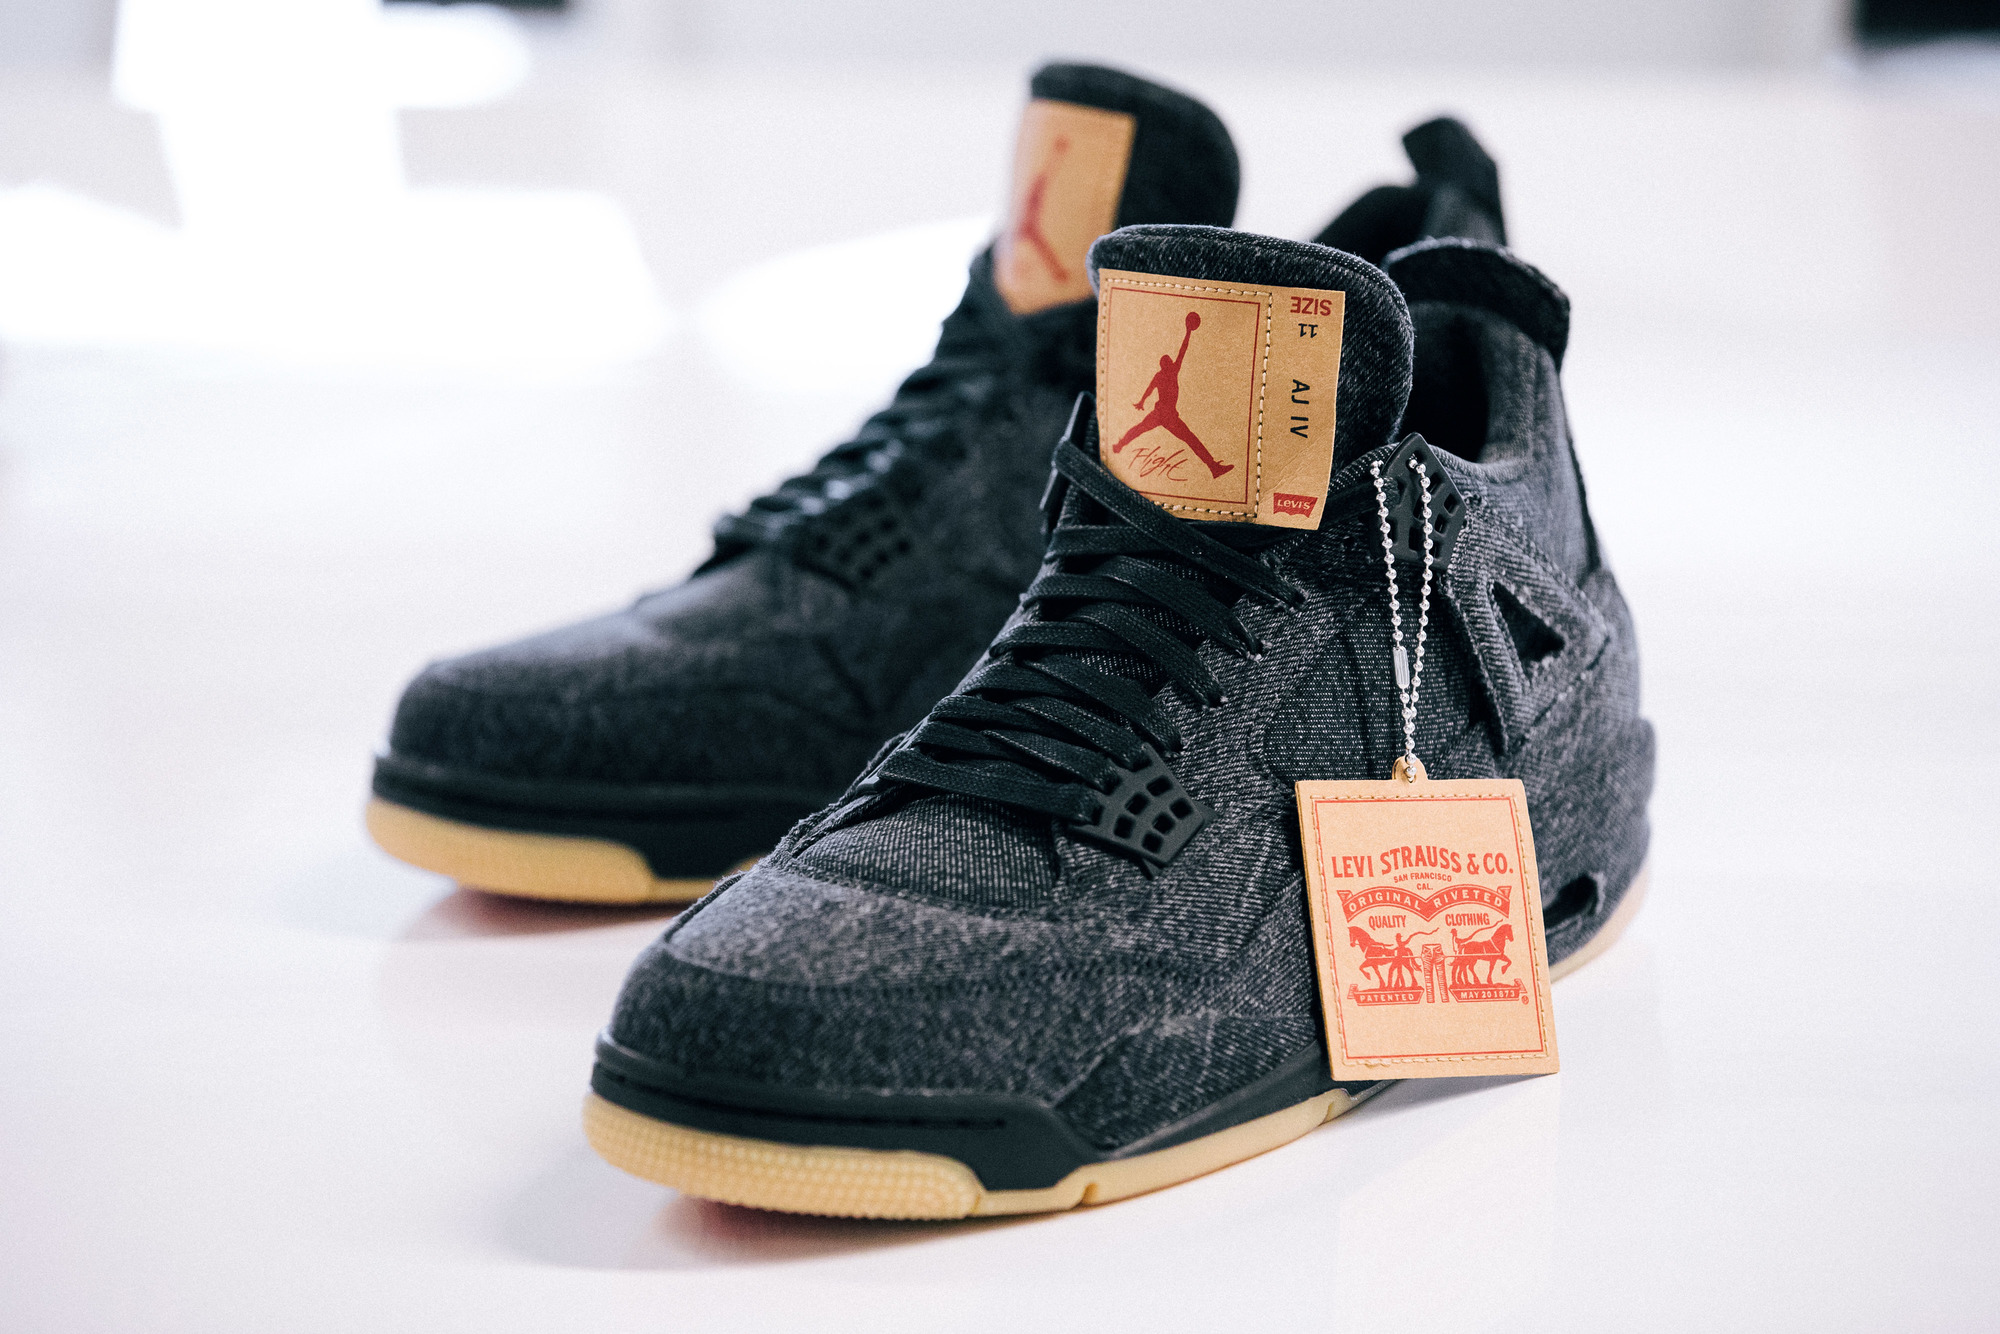 finest selection 12eea 93f10 The Upcoming Levi's x Air Jordan 4 Release Date is Official ...